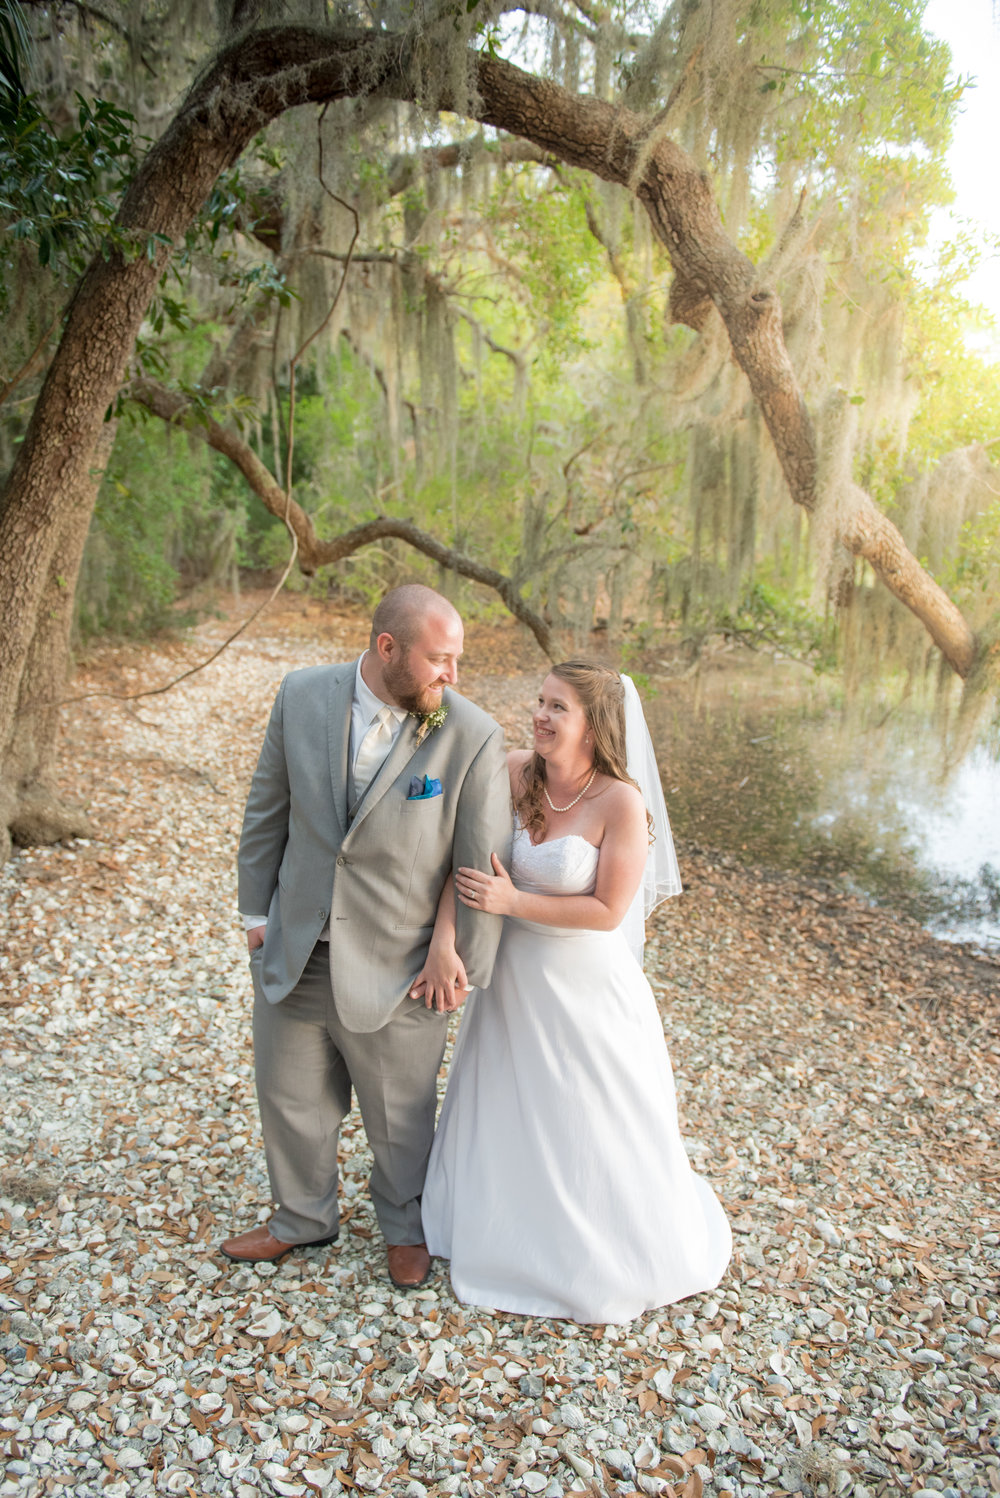 Cara + Chris wedding Amelia Island